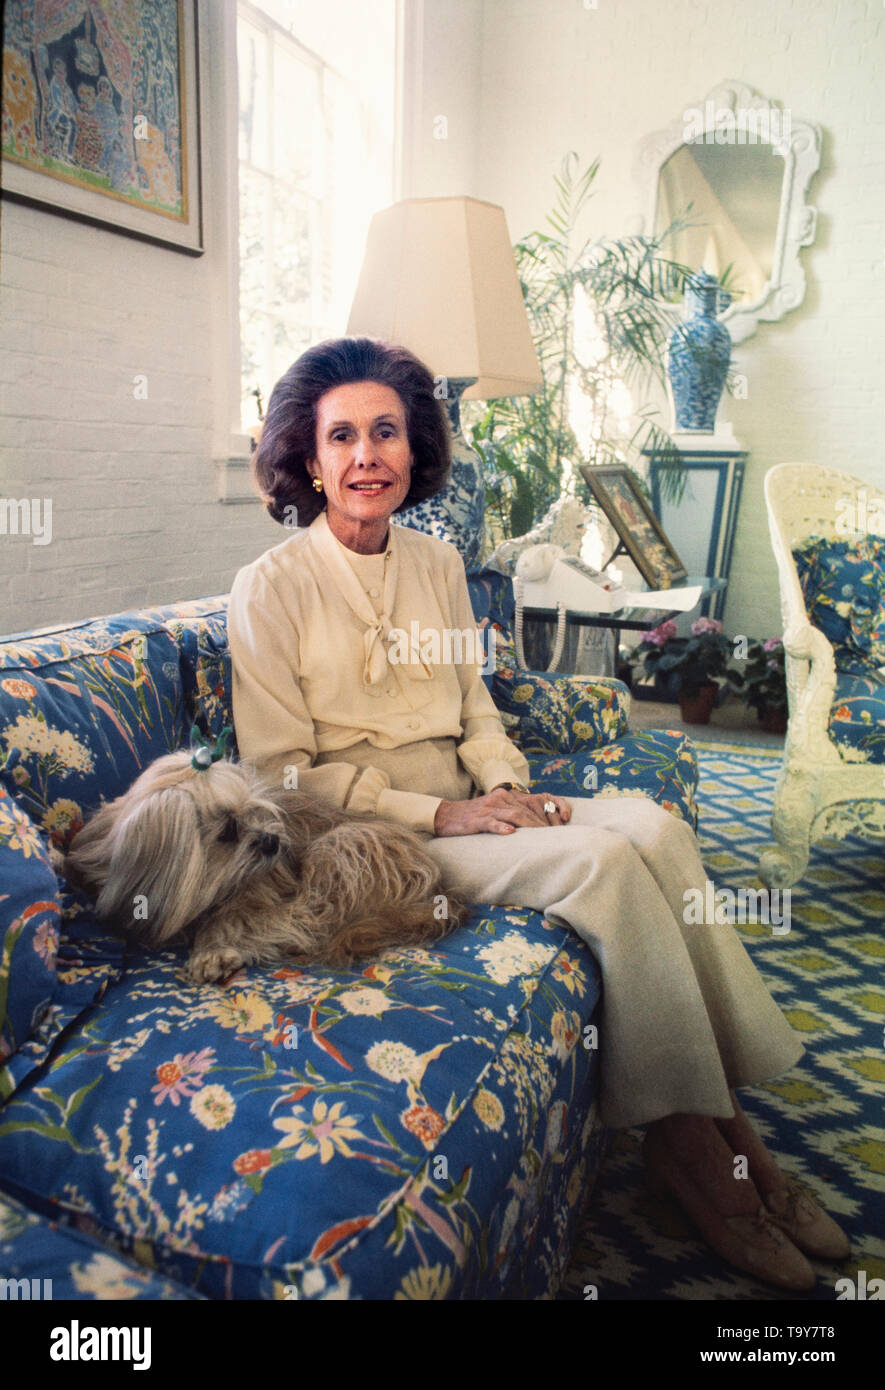 Anne Beau Cox Chambers - born December 1, 1919 - is an American media proprietor, who had a stake of interest in Cox Enterprises, a privately held media empire that includes newspapers, television, radio, cable television, and other businesses.  She is the daughter of James M. Cox, a newspaper publisher and 1920 Democratic Presidential nominee, and his second wife, Margaretta Parker Blair. She owns and controls her father's business interests, through Cox Enterprises. For 33 years she co-owned the family company with her sister, Barbara Cox Anthony, who died on May 28, 2007. - Stock Image